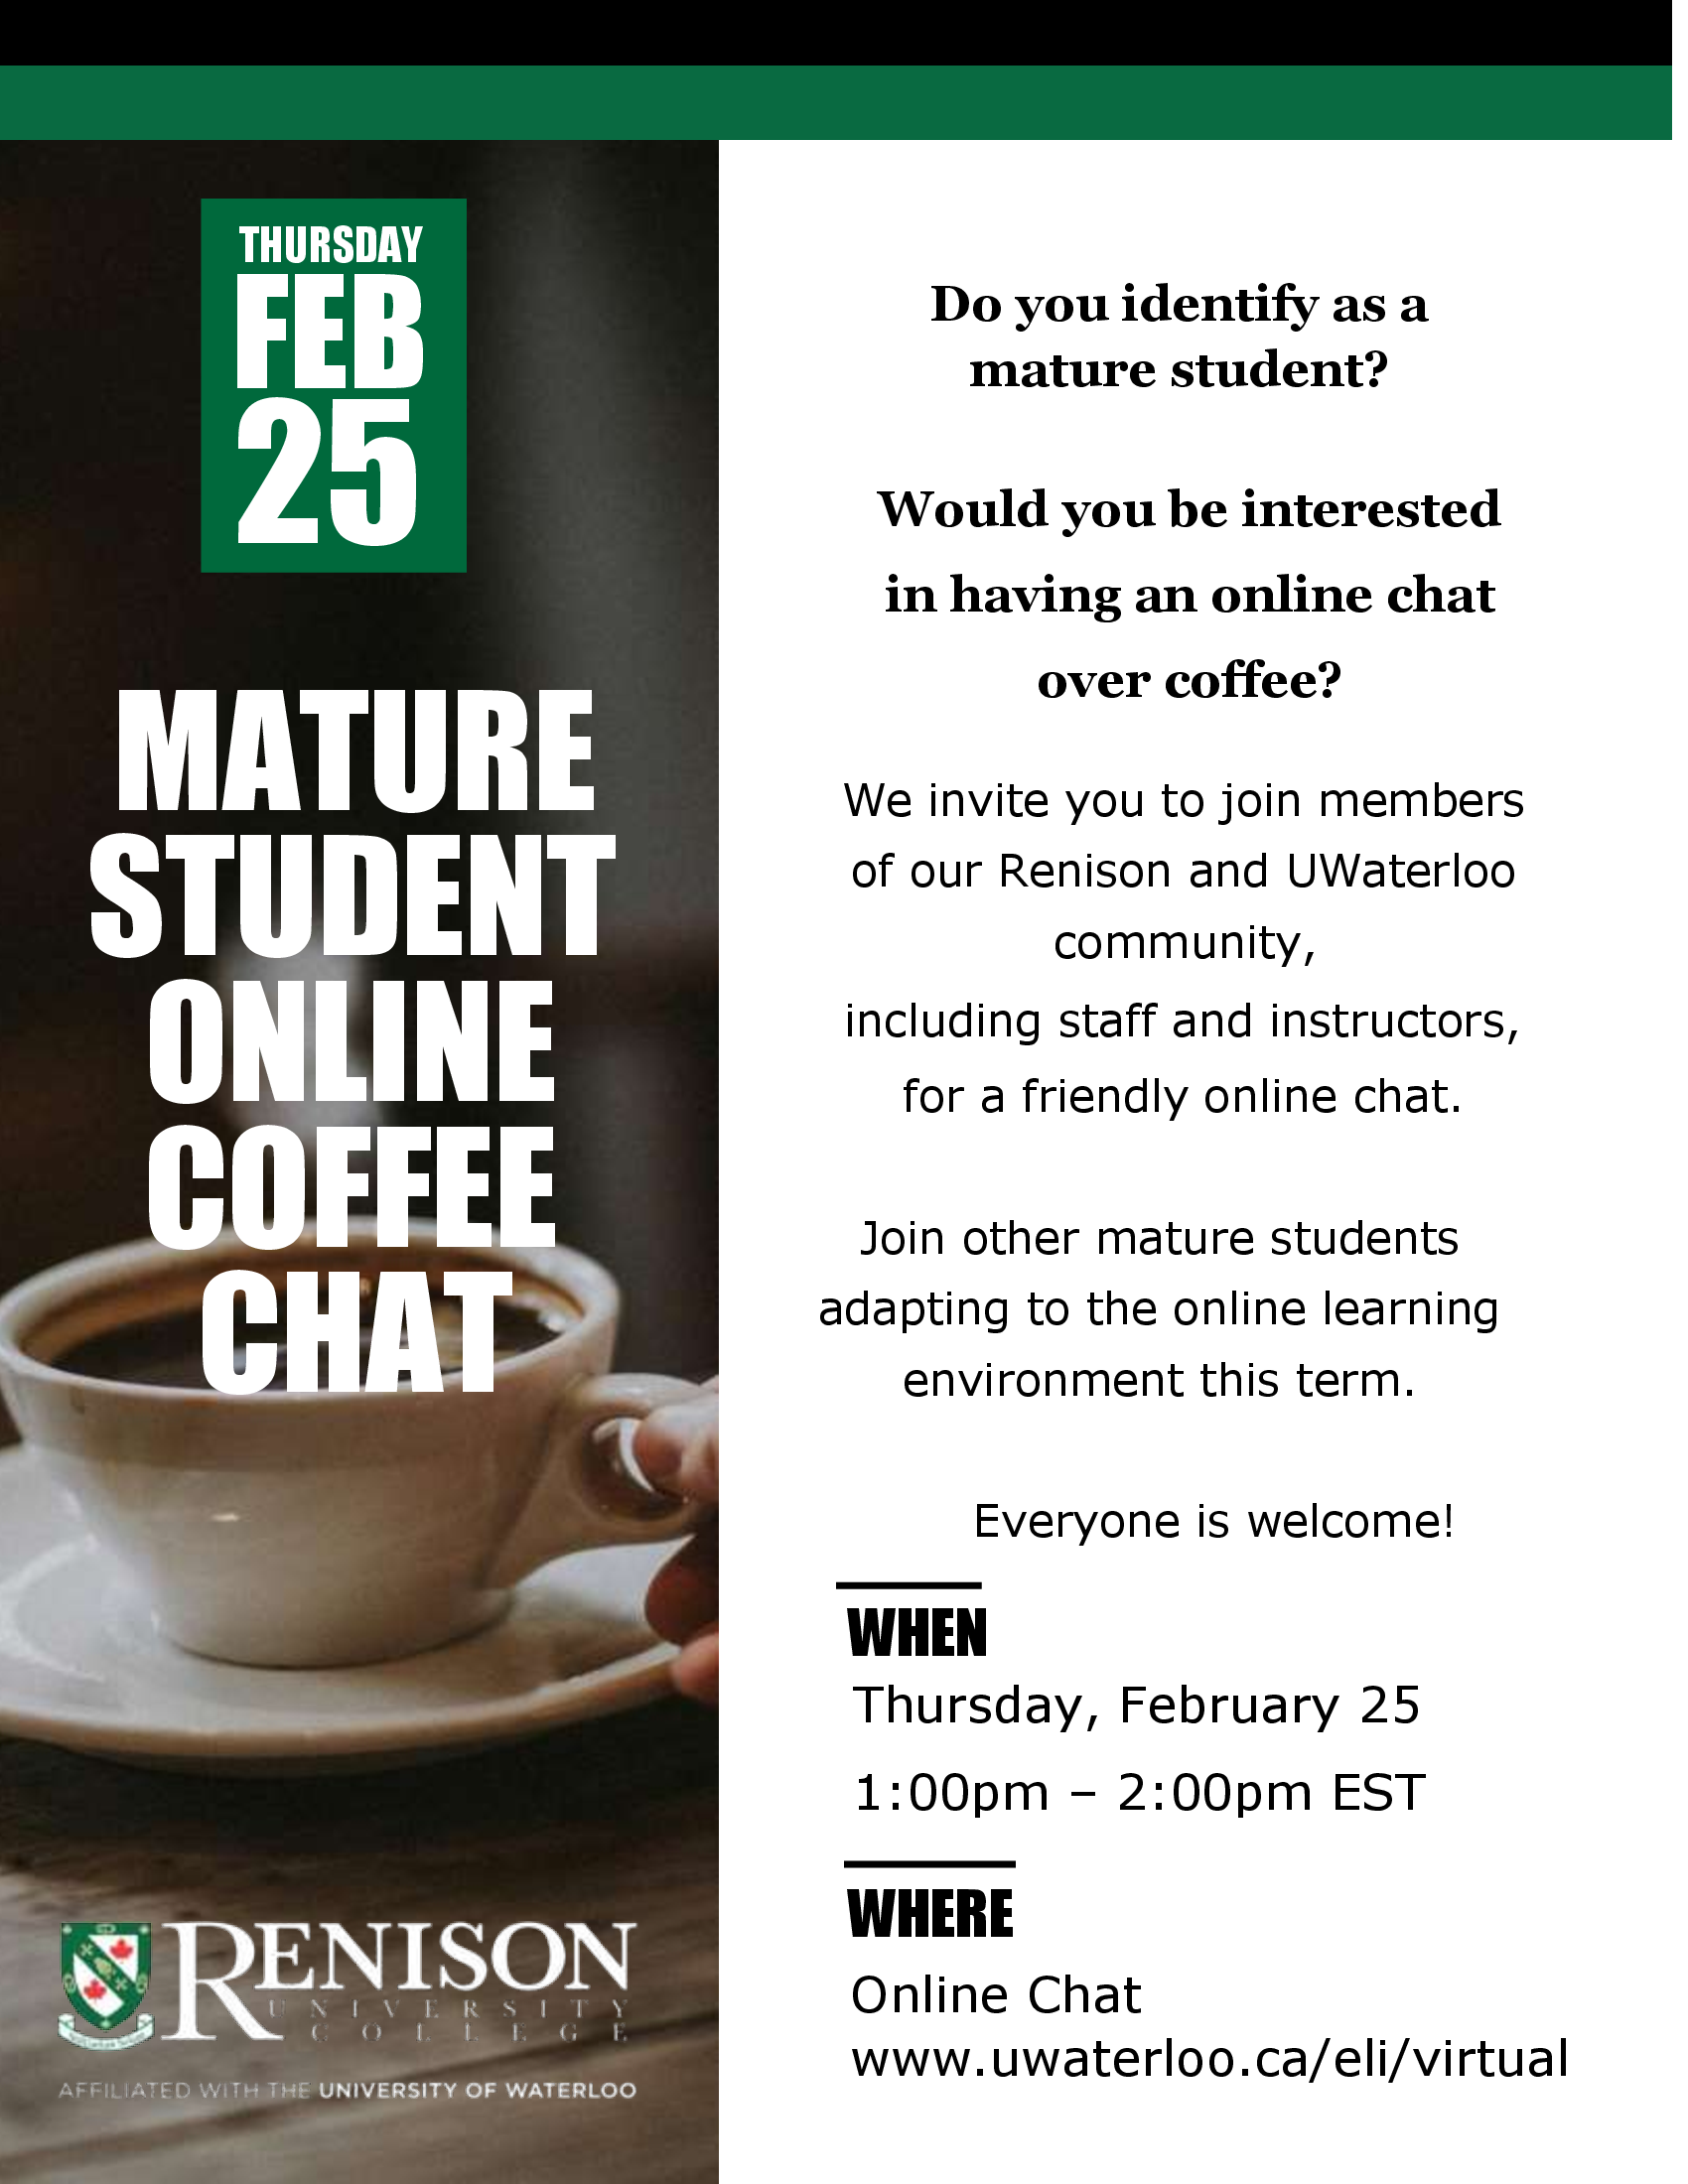 This is a flyer for the Mature Student Coffee Chat hosted by Renison